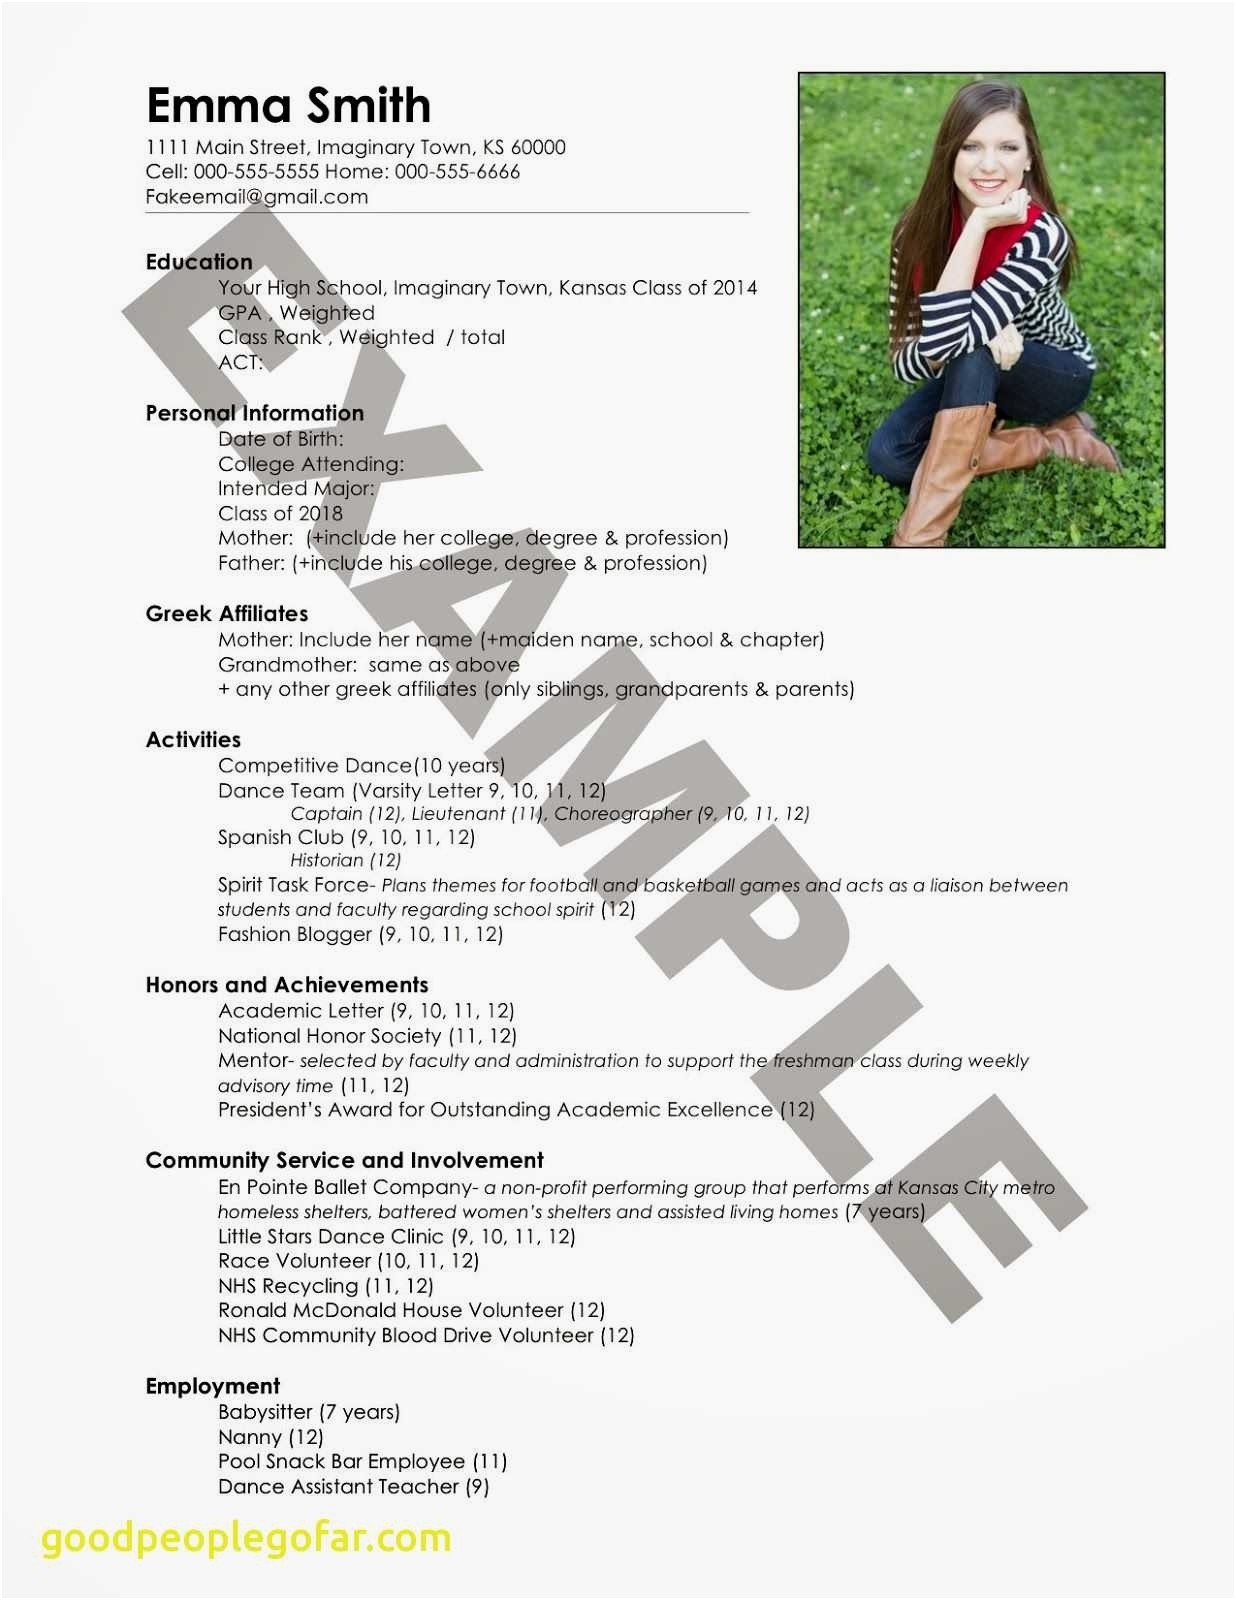 Seo Resume Template - Munity Service Resume Best 54 Best Larry Paul Spradling Seo